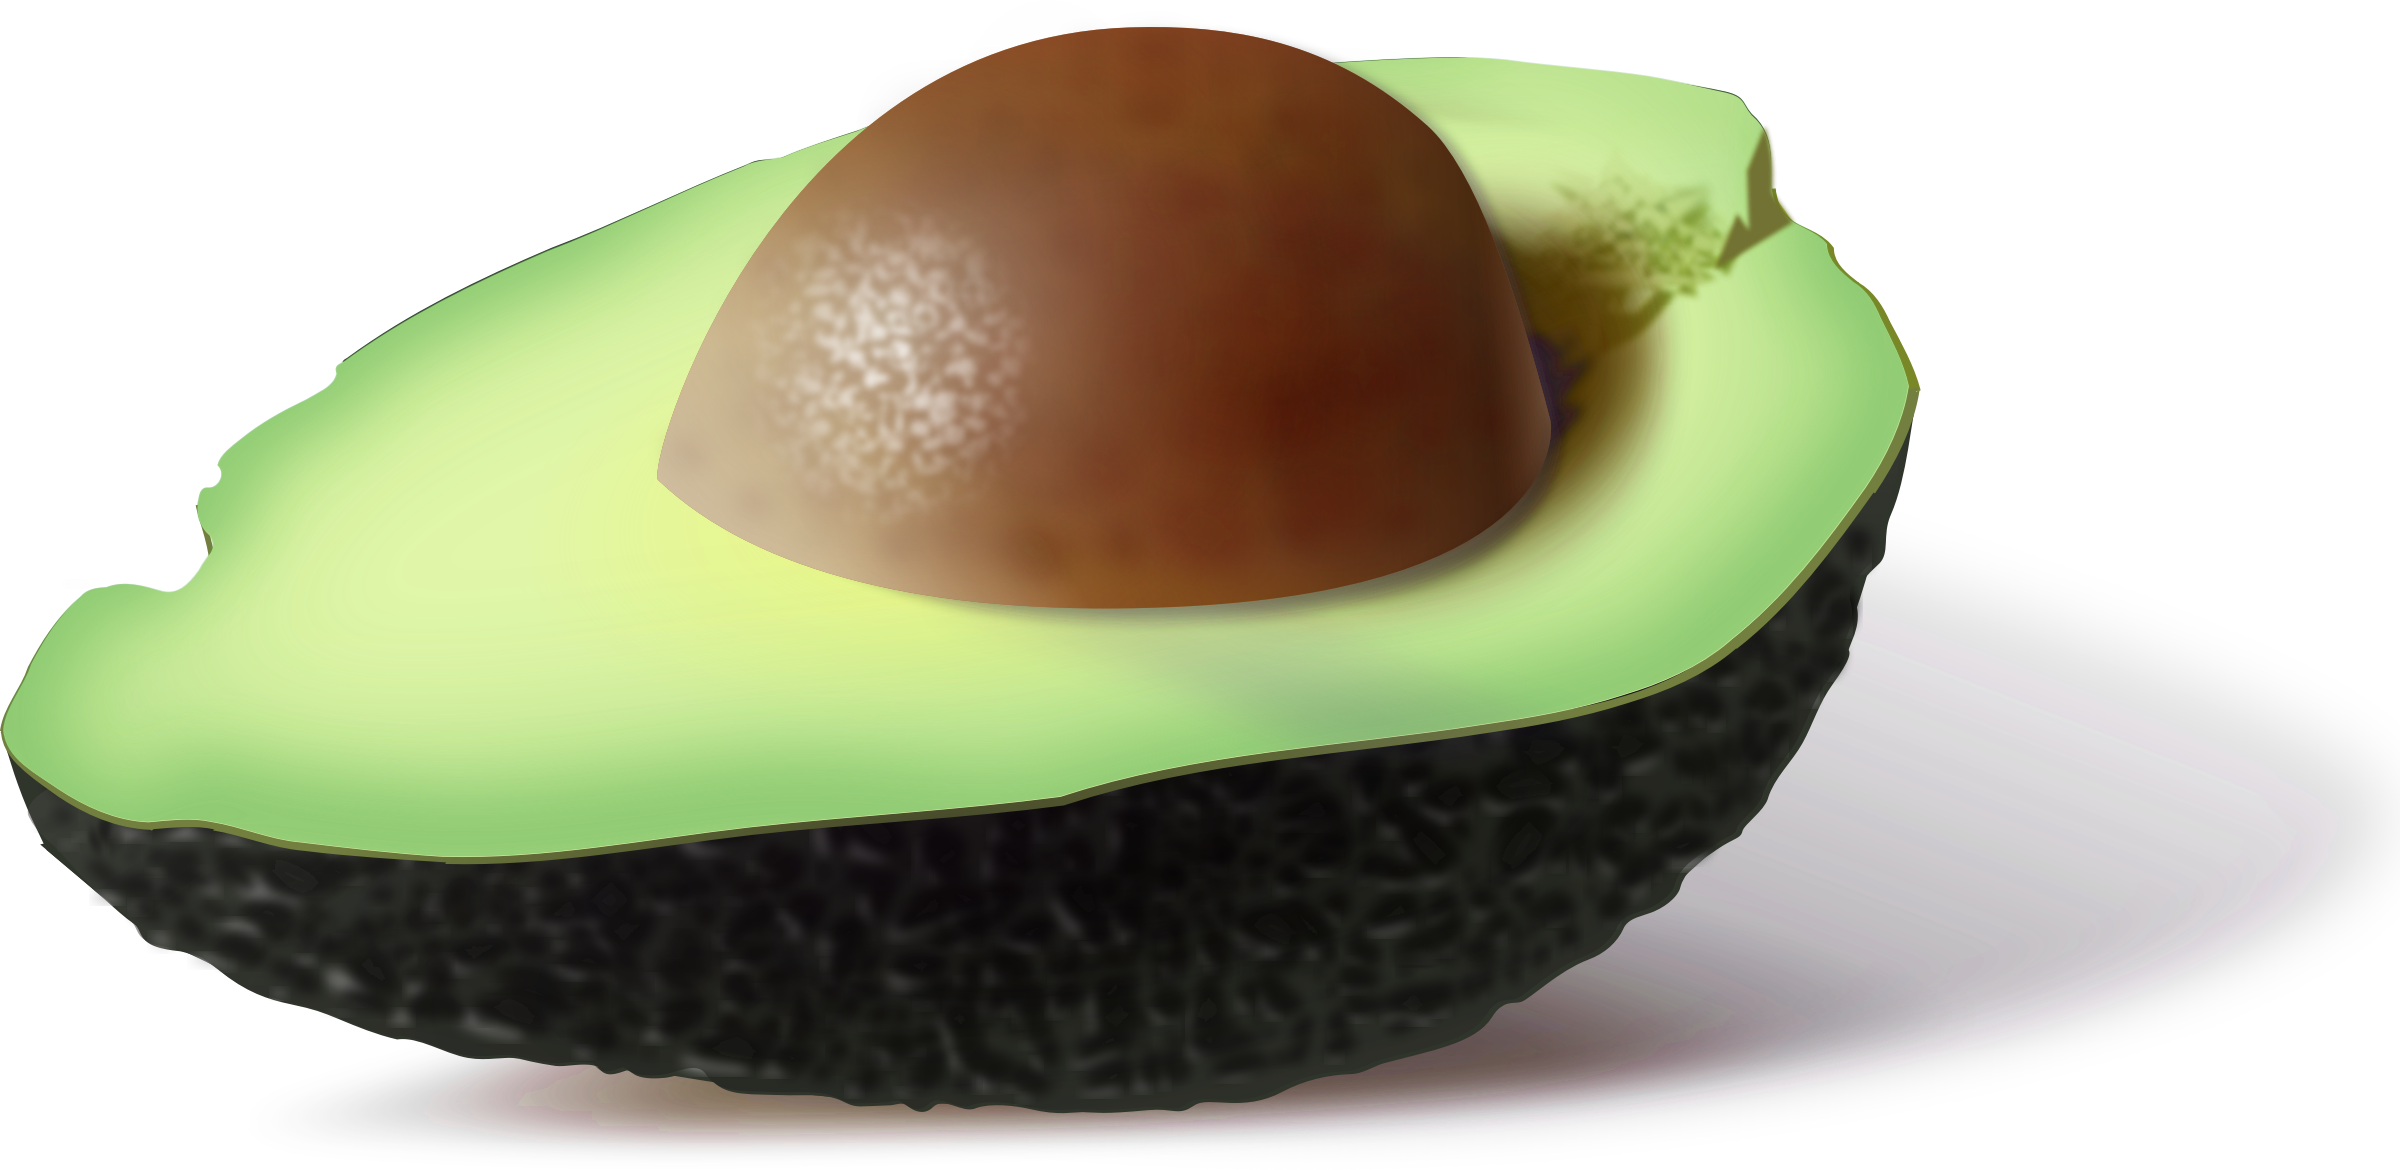 Half of an Avocado by pipo